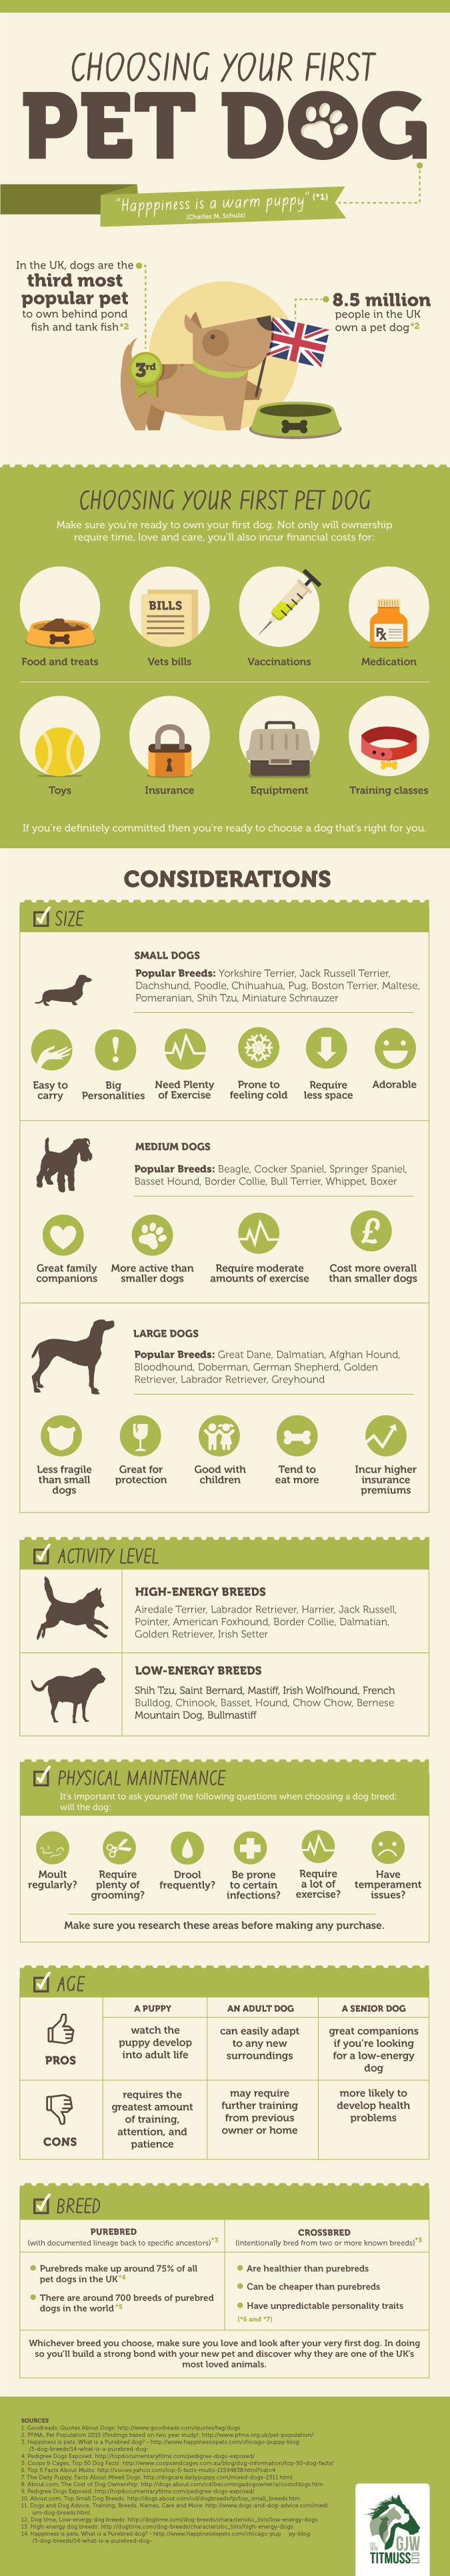 Choosing Your First Pet Dog Infographic Helpful Info About The